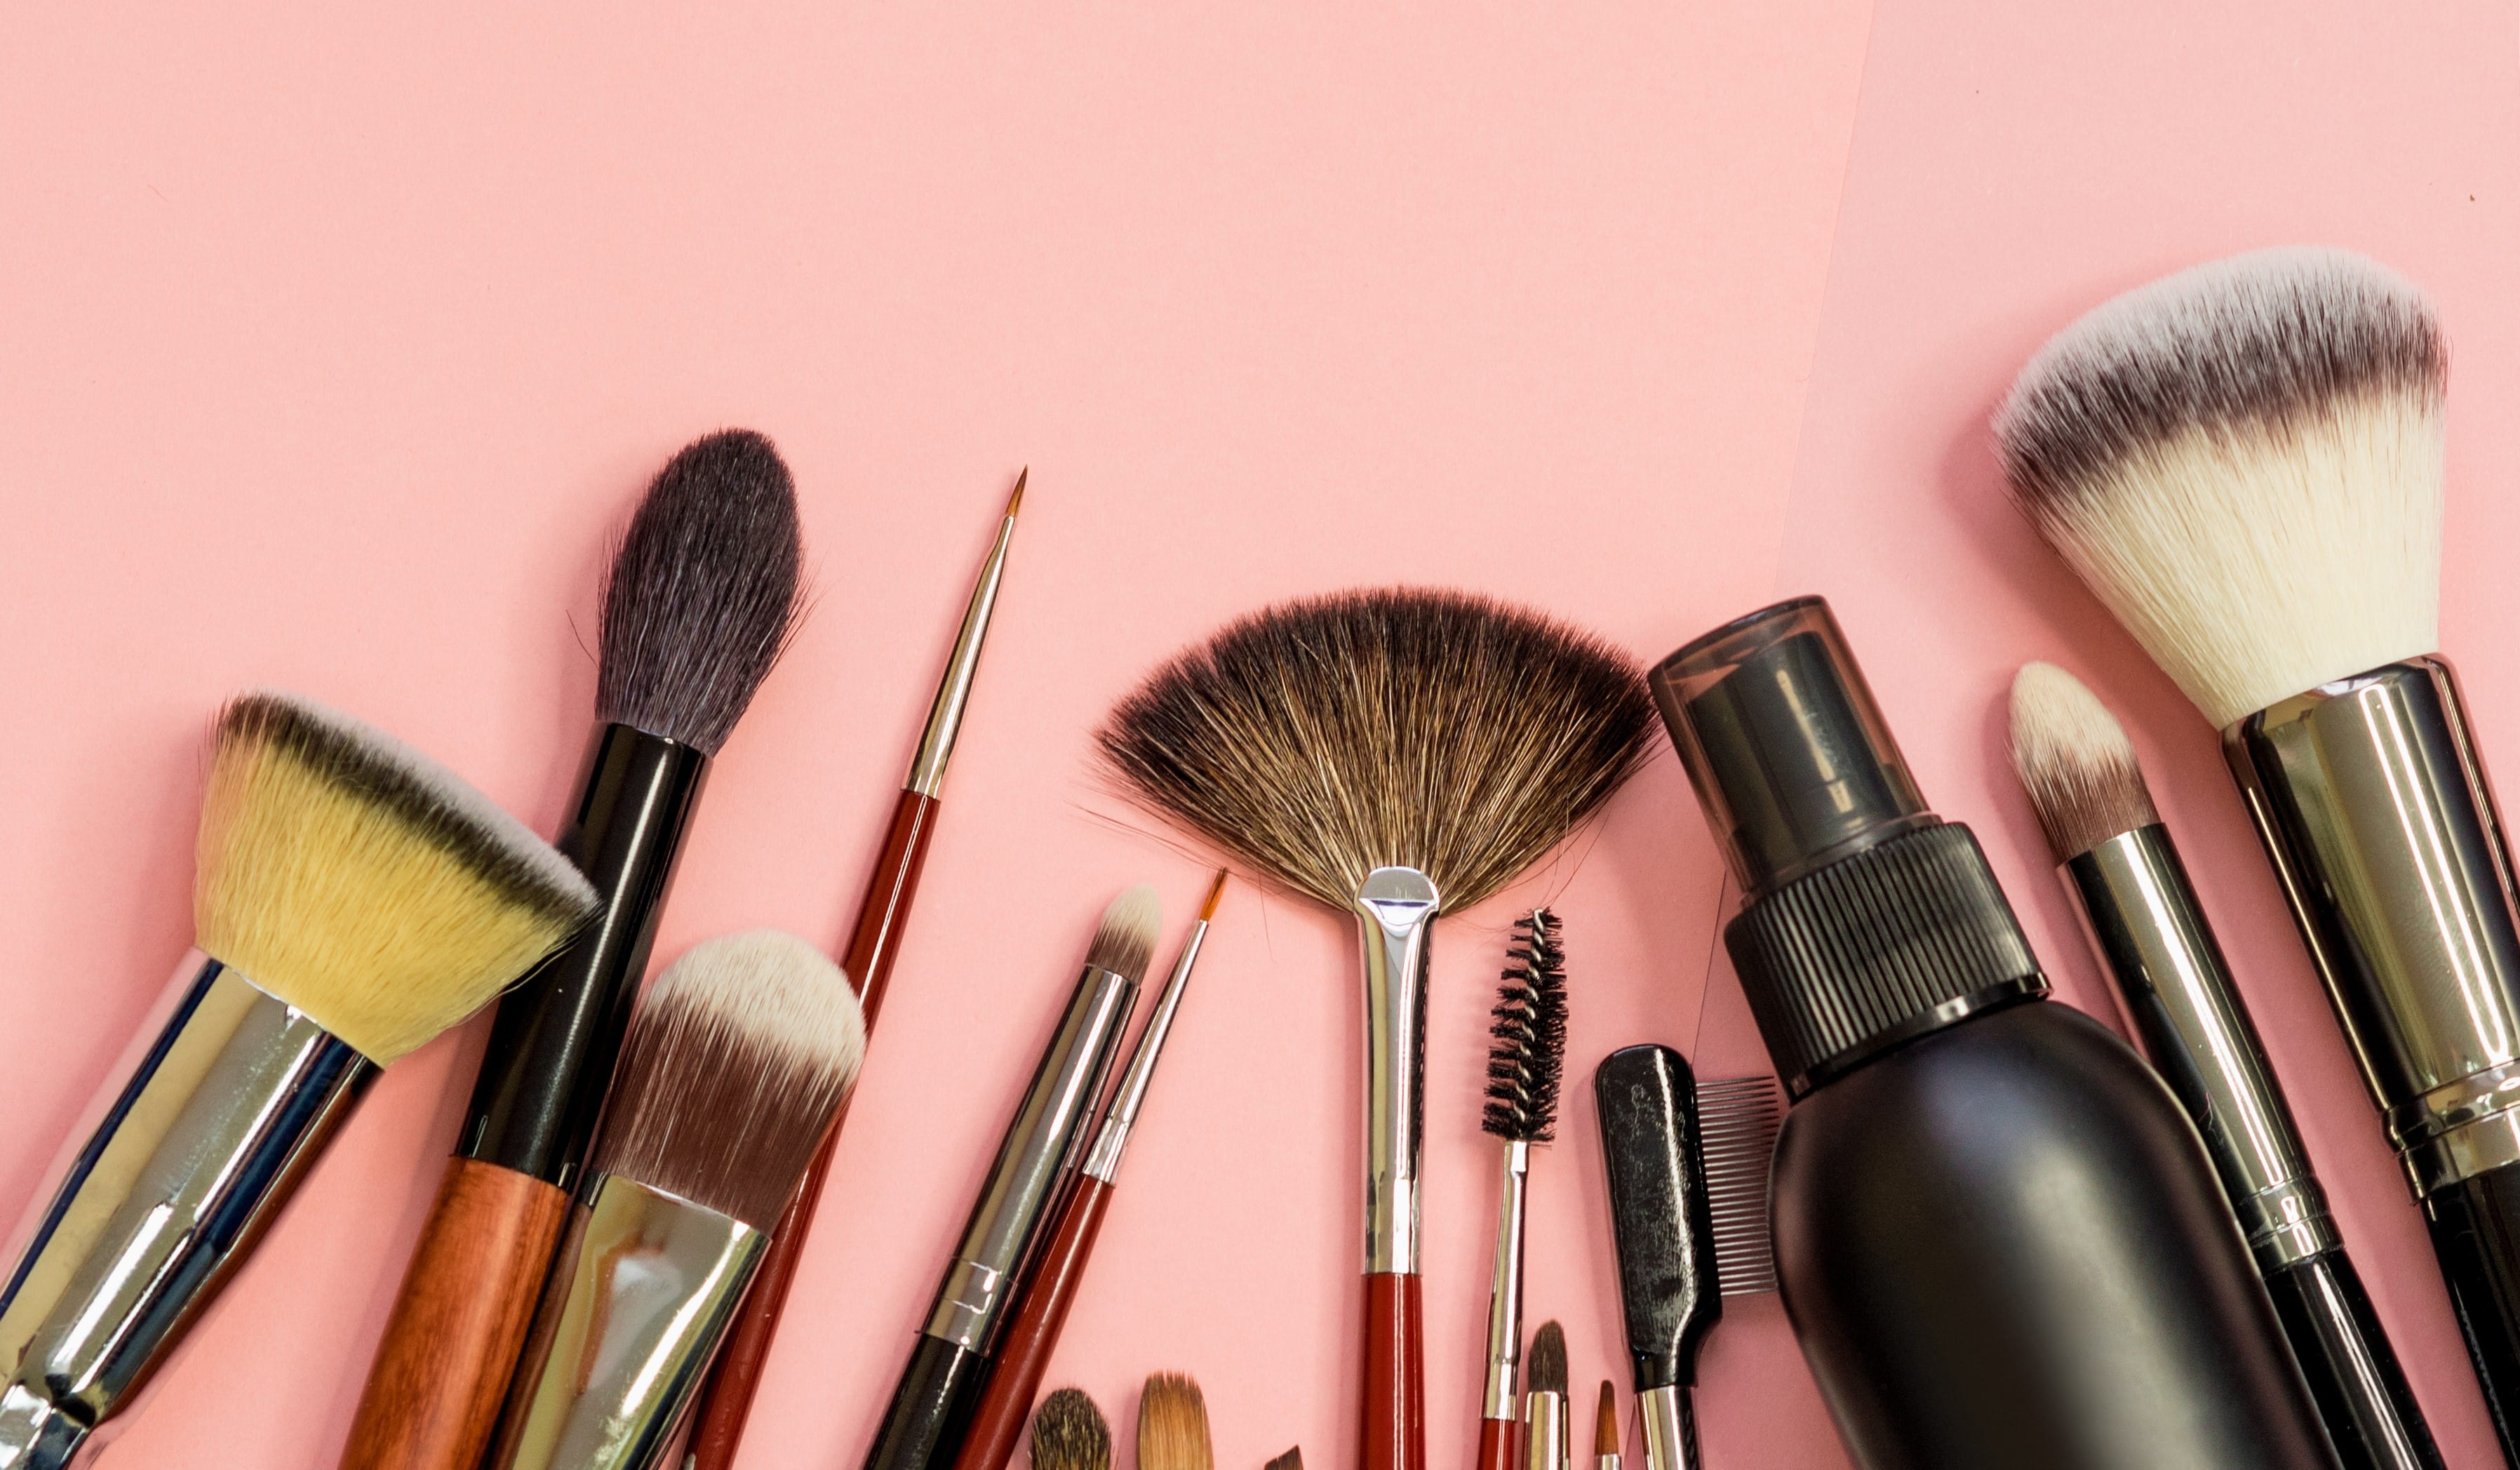 Clean Your Makeup Tools and Cosmetics for Healthier Skin